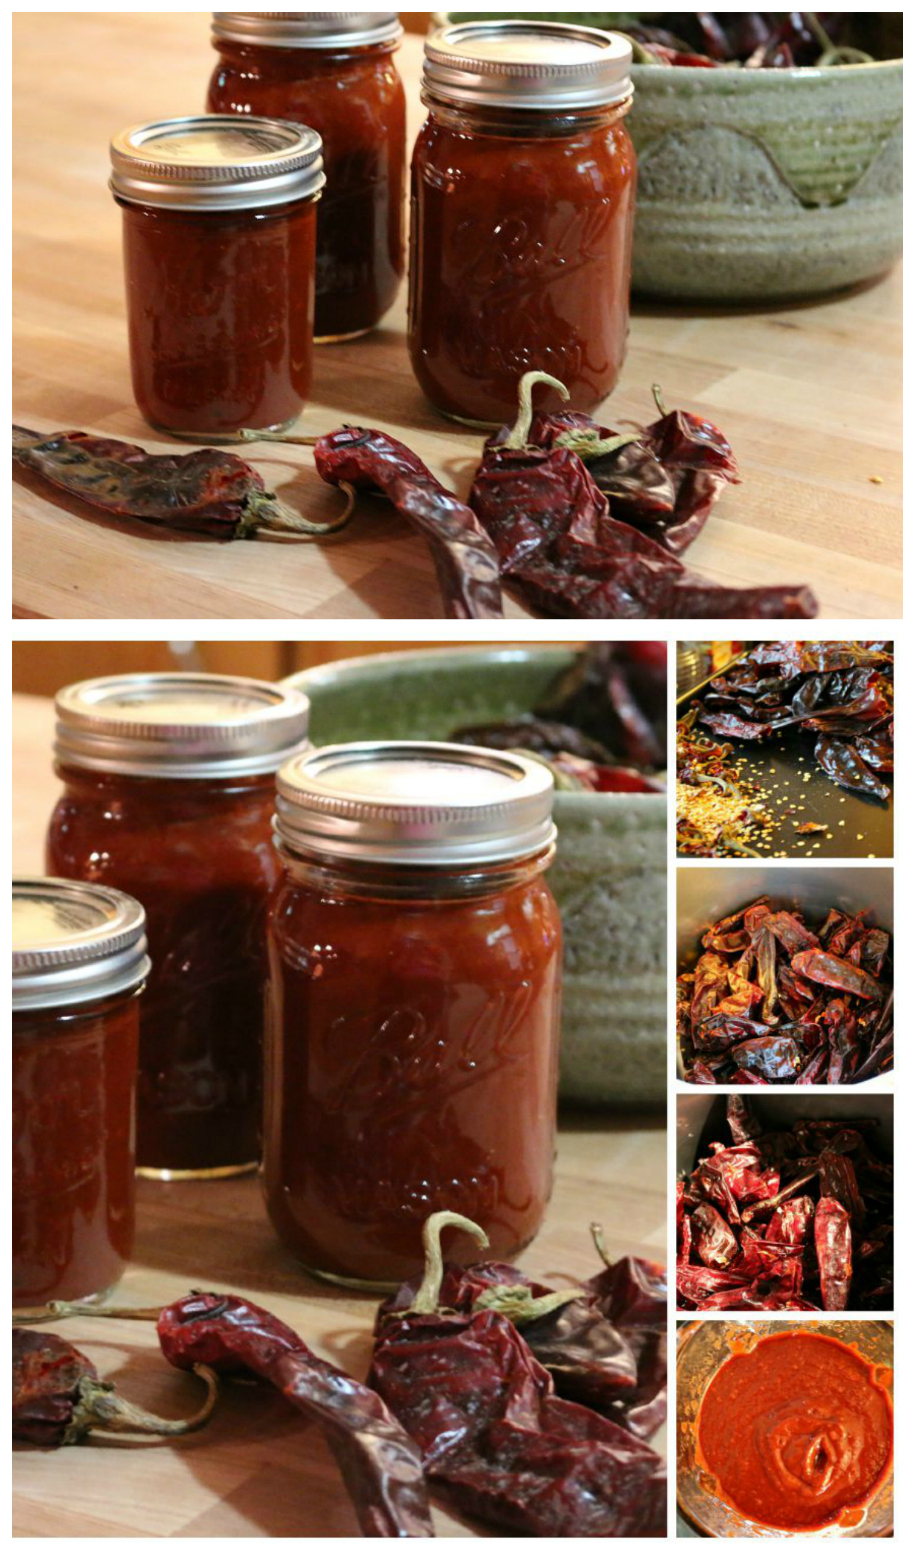 New Mexico Red Chile Chili - Blender Recipe - CeceliasGoodStuff.com | Good Food for Good People